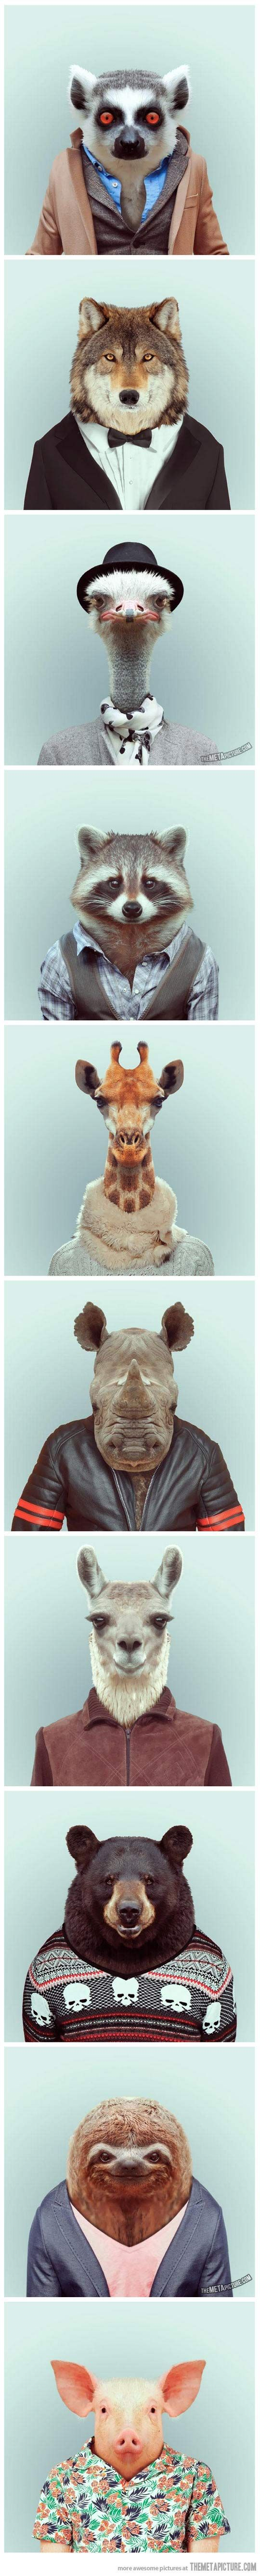 funny animals dressed as humans